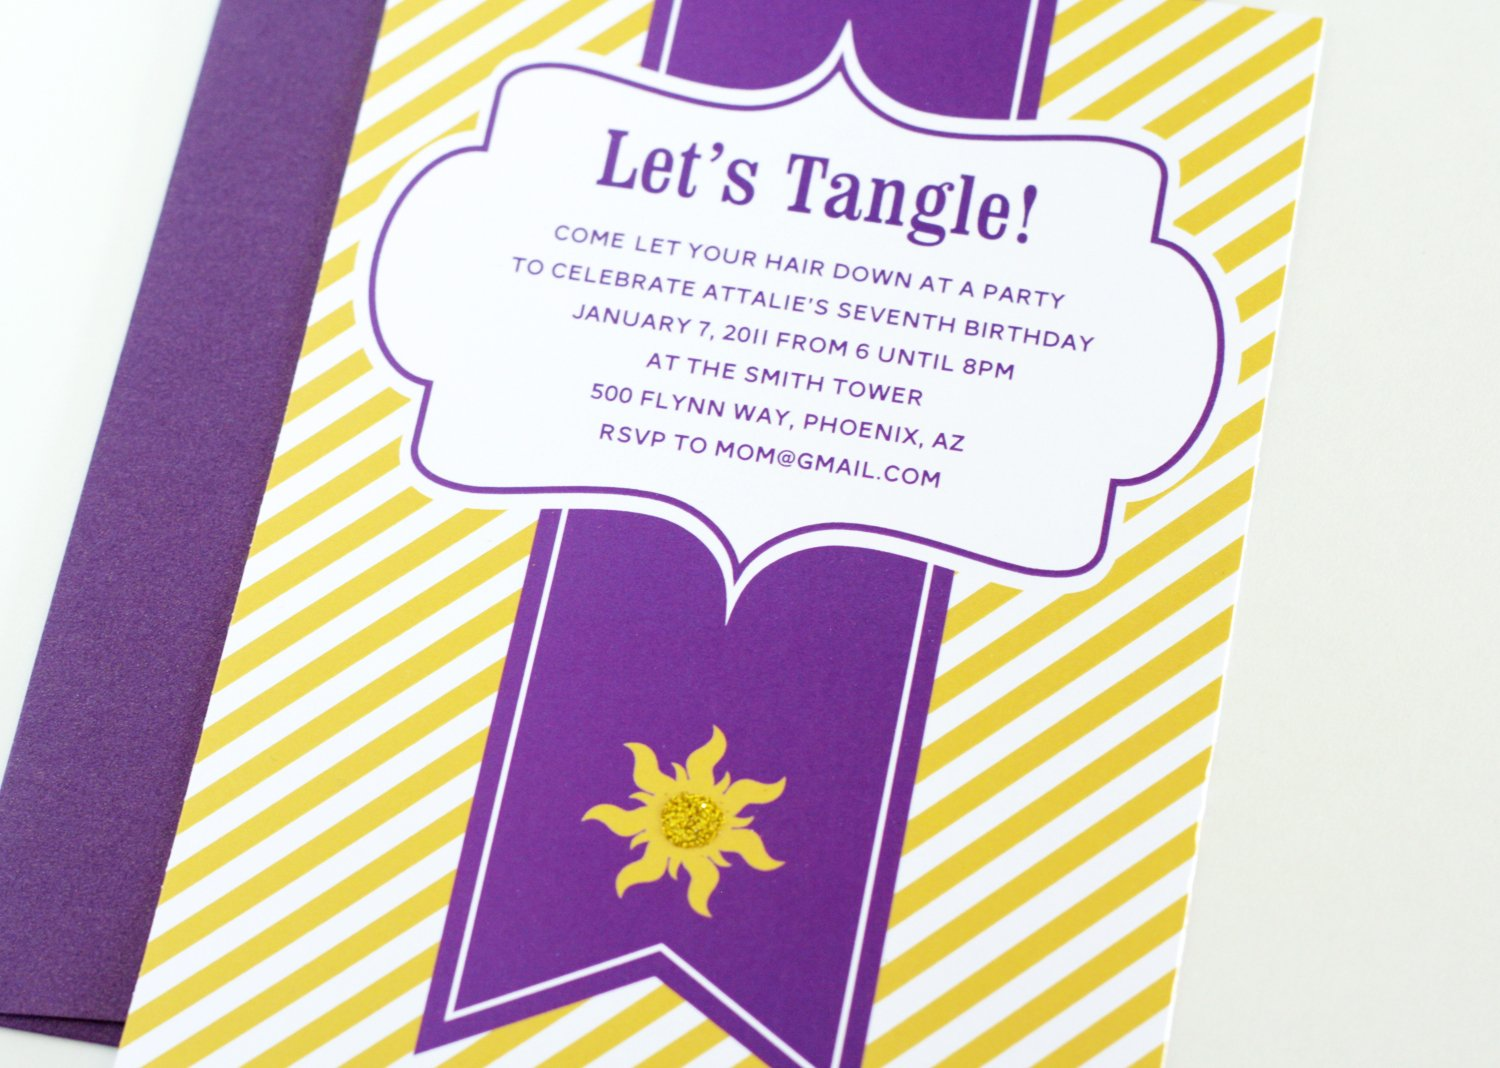 Easy Tangled Party Invites - Paging Supermom